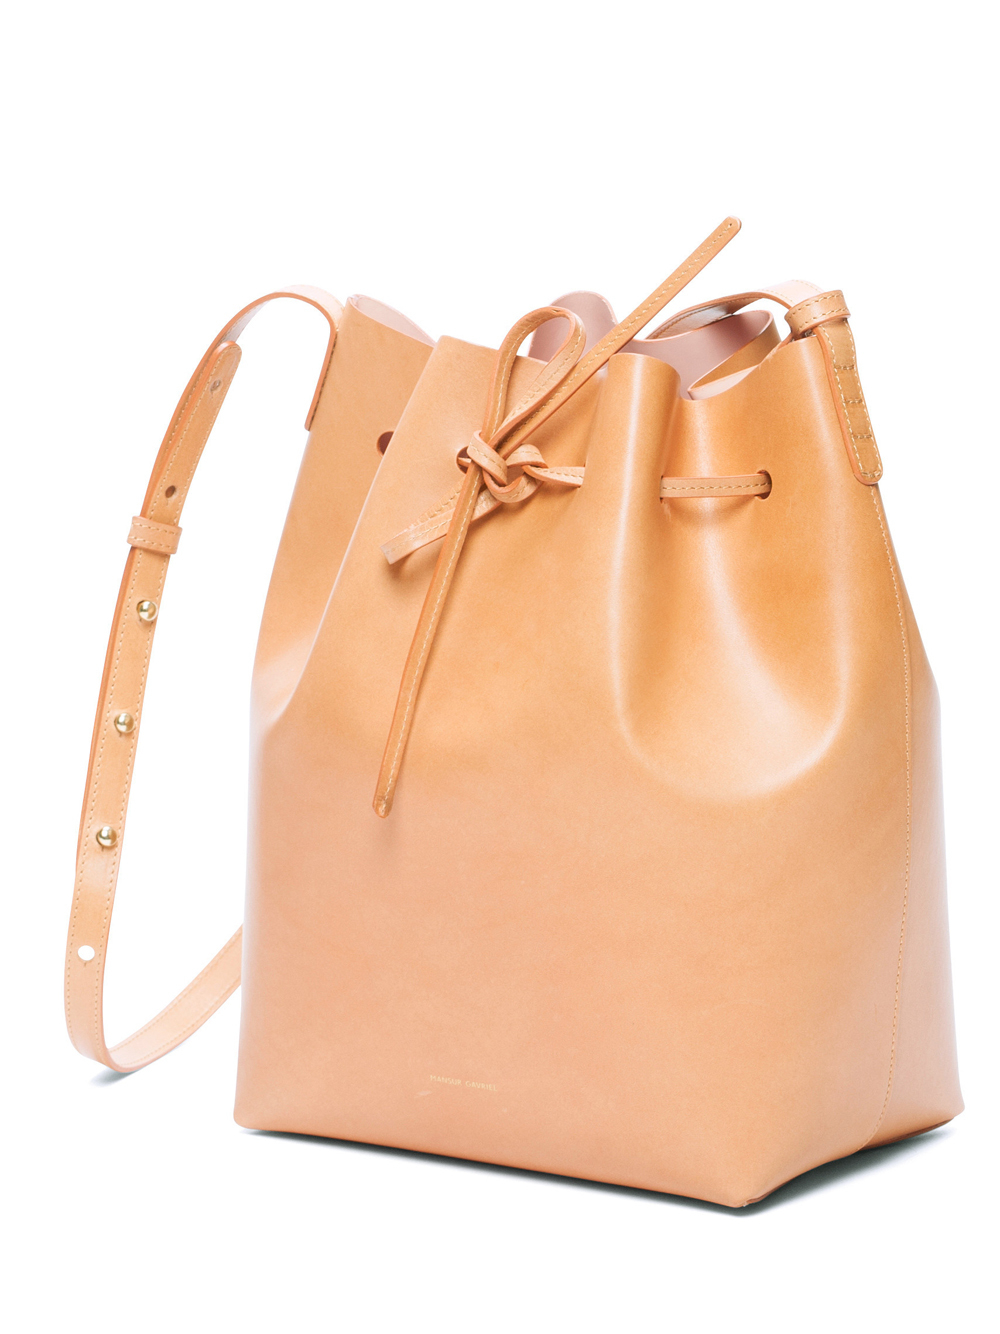 mansur gavriel leather bucket bag in natural lyst. Black Bedroom Furniture Sets. Home Design Ideas